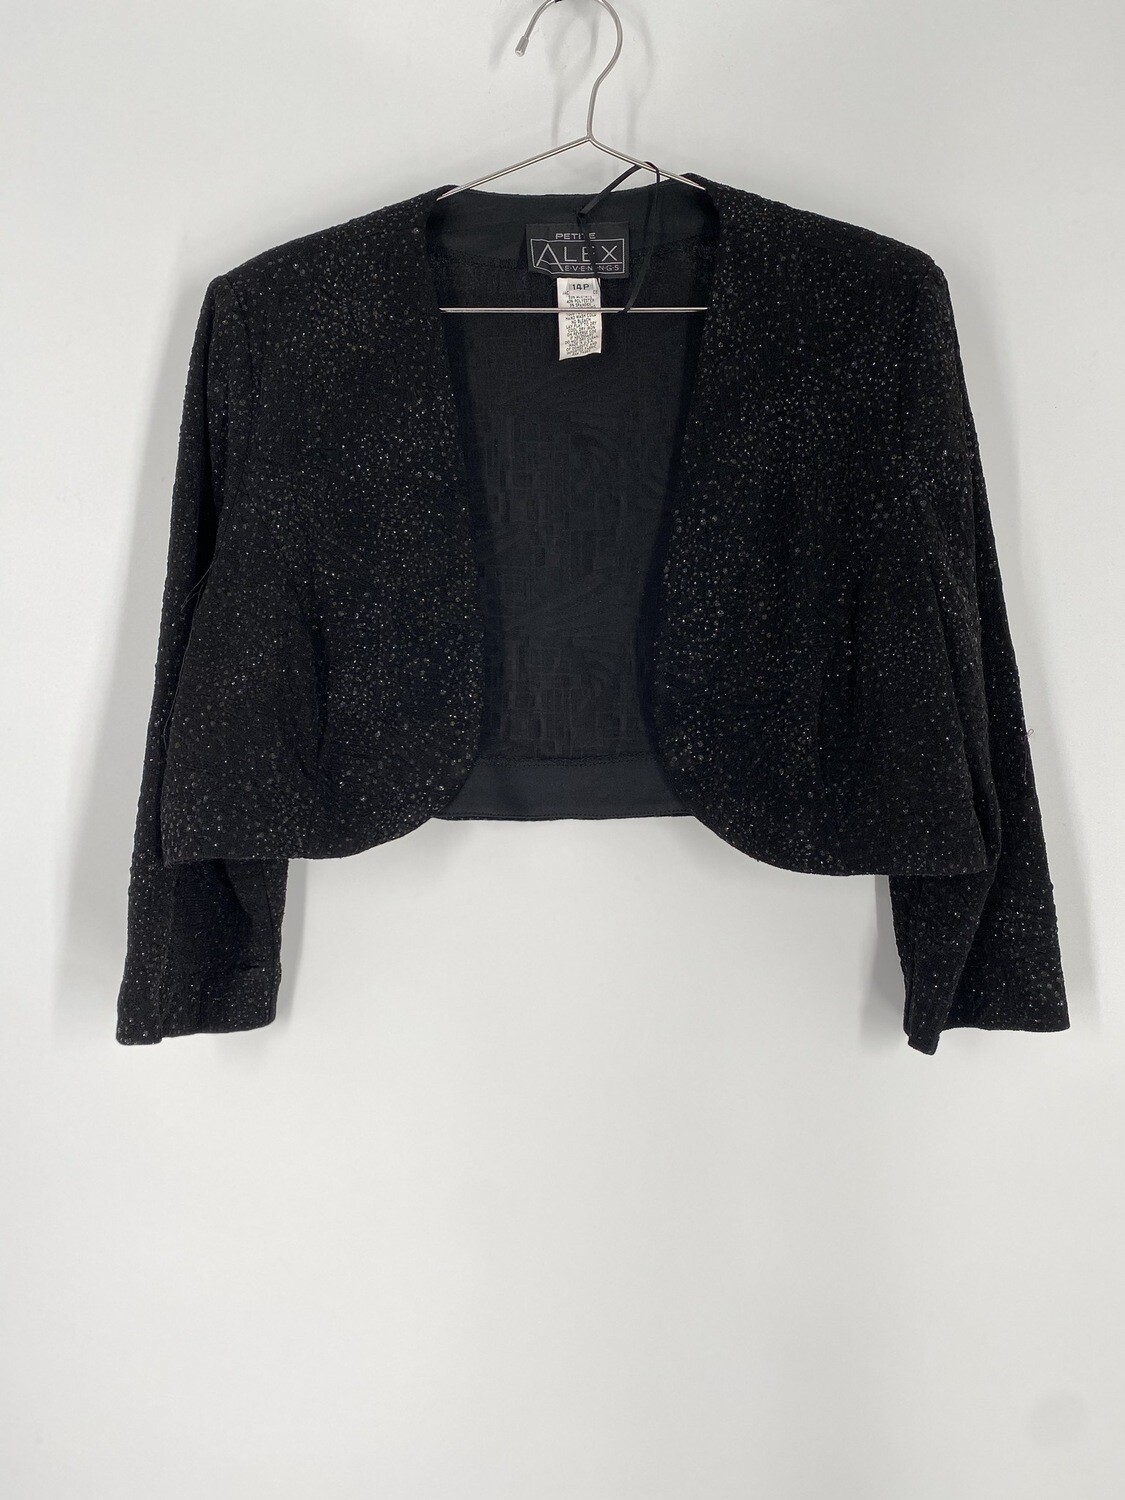 Alex Evenings Black Glitter Cropped Top Size M